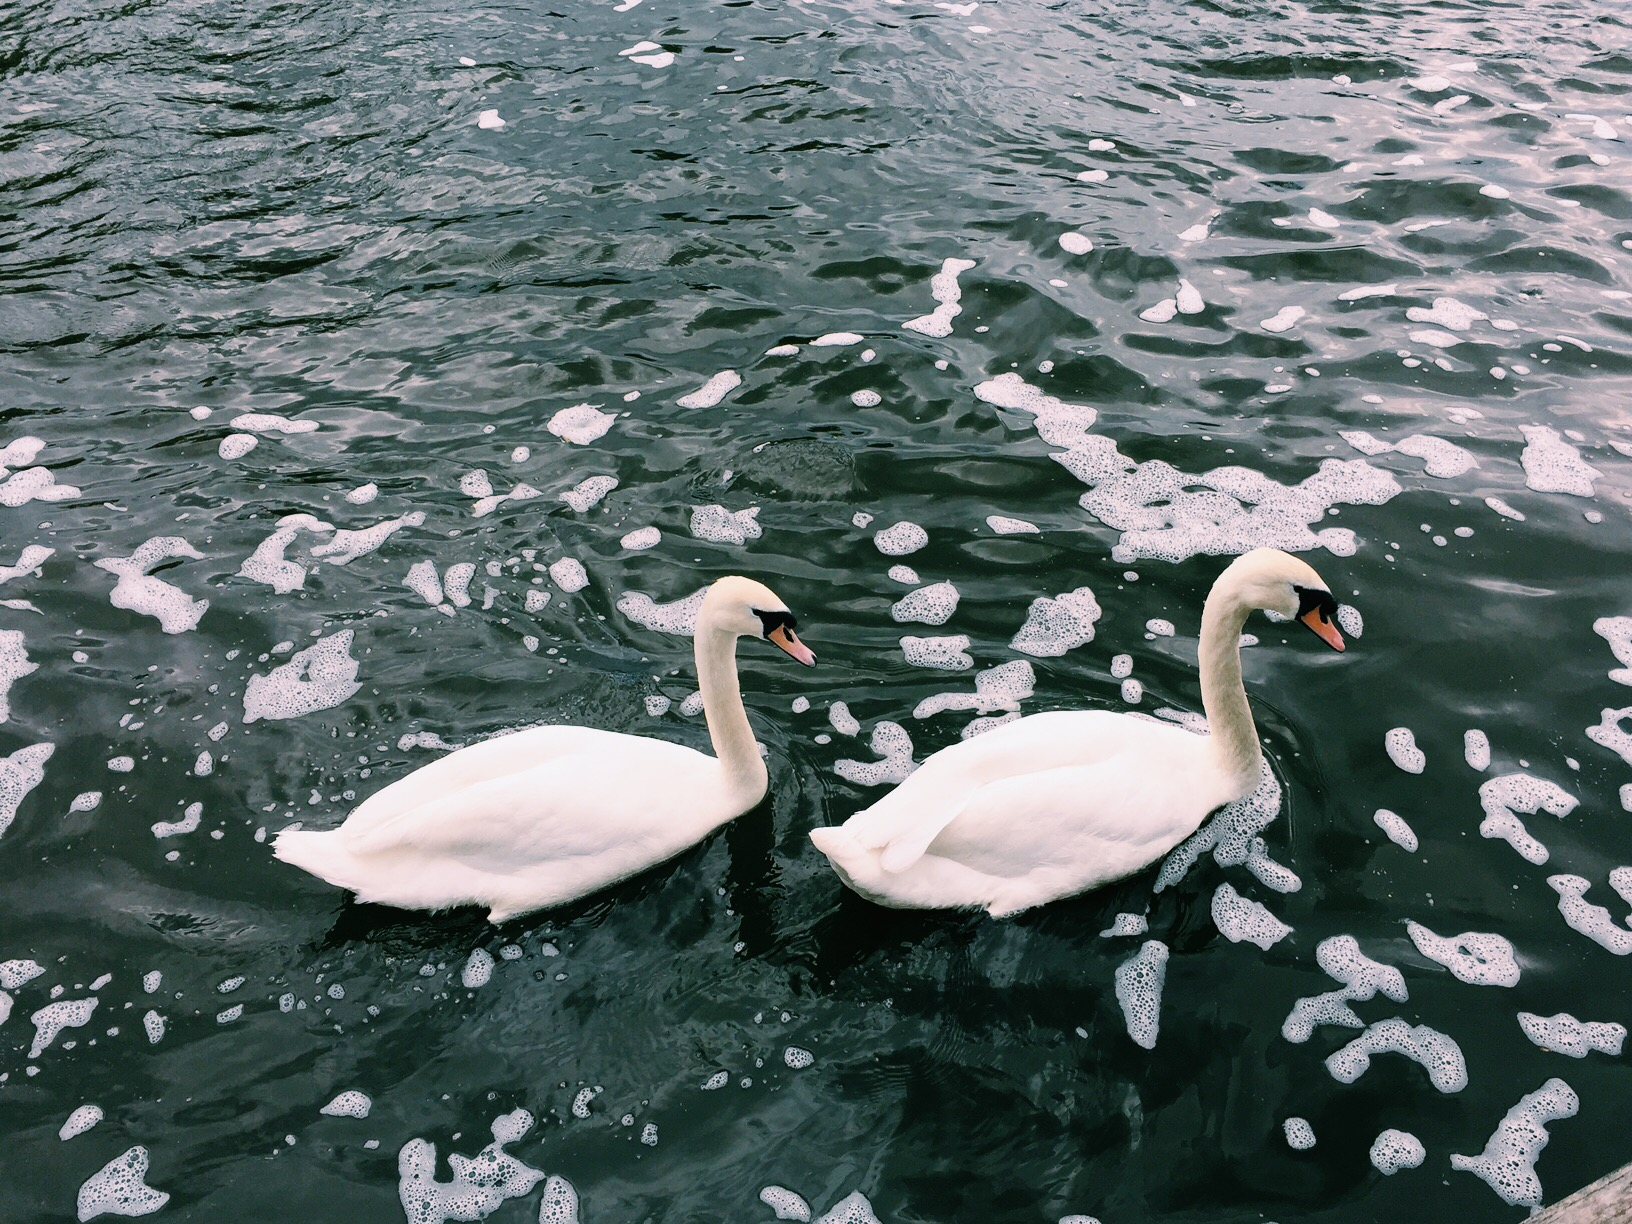 Came across some beautiful swans while walking the dogs.  Gorgeous and unfriendly.